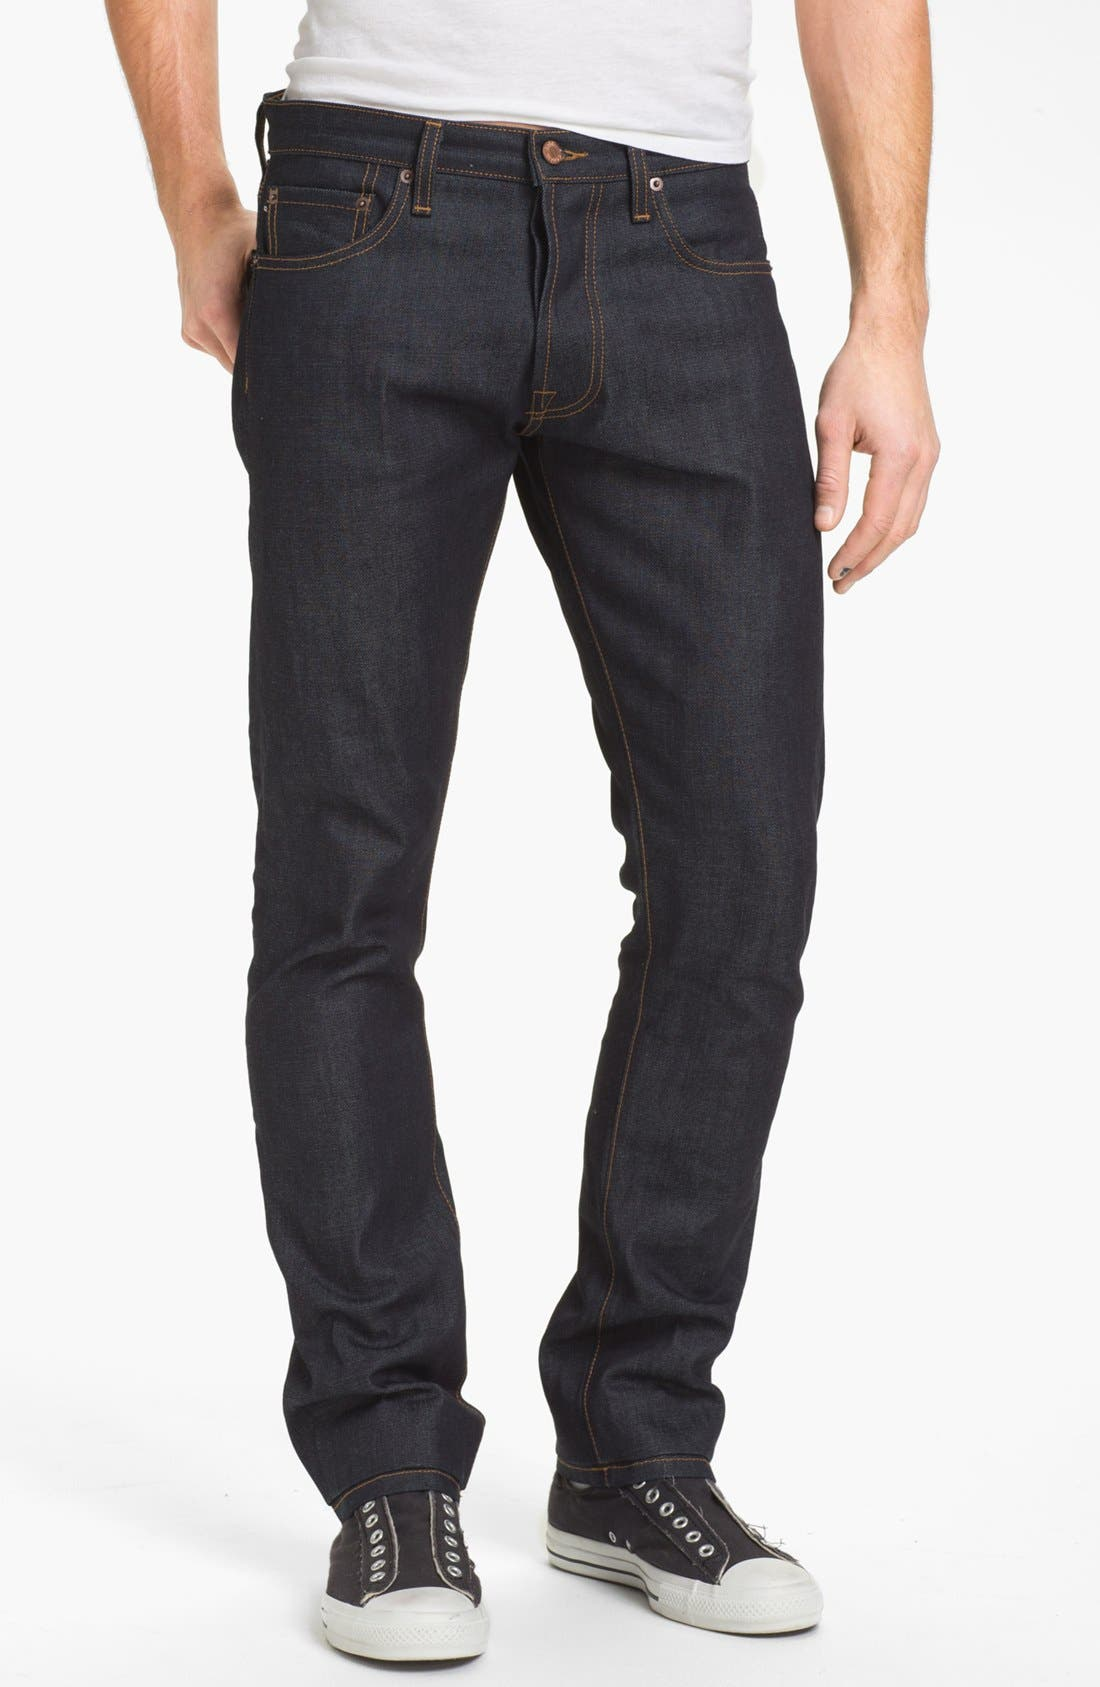 Alternate Image 1 Selected - Baldwin 'Henley' Slim Fit Selvedge Jeans (Dry)